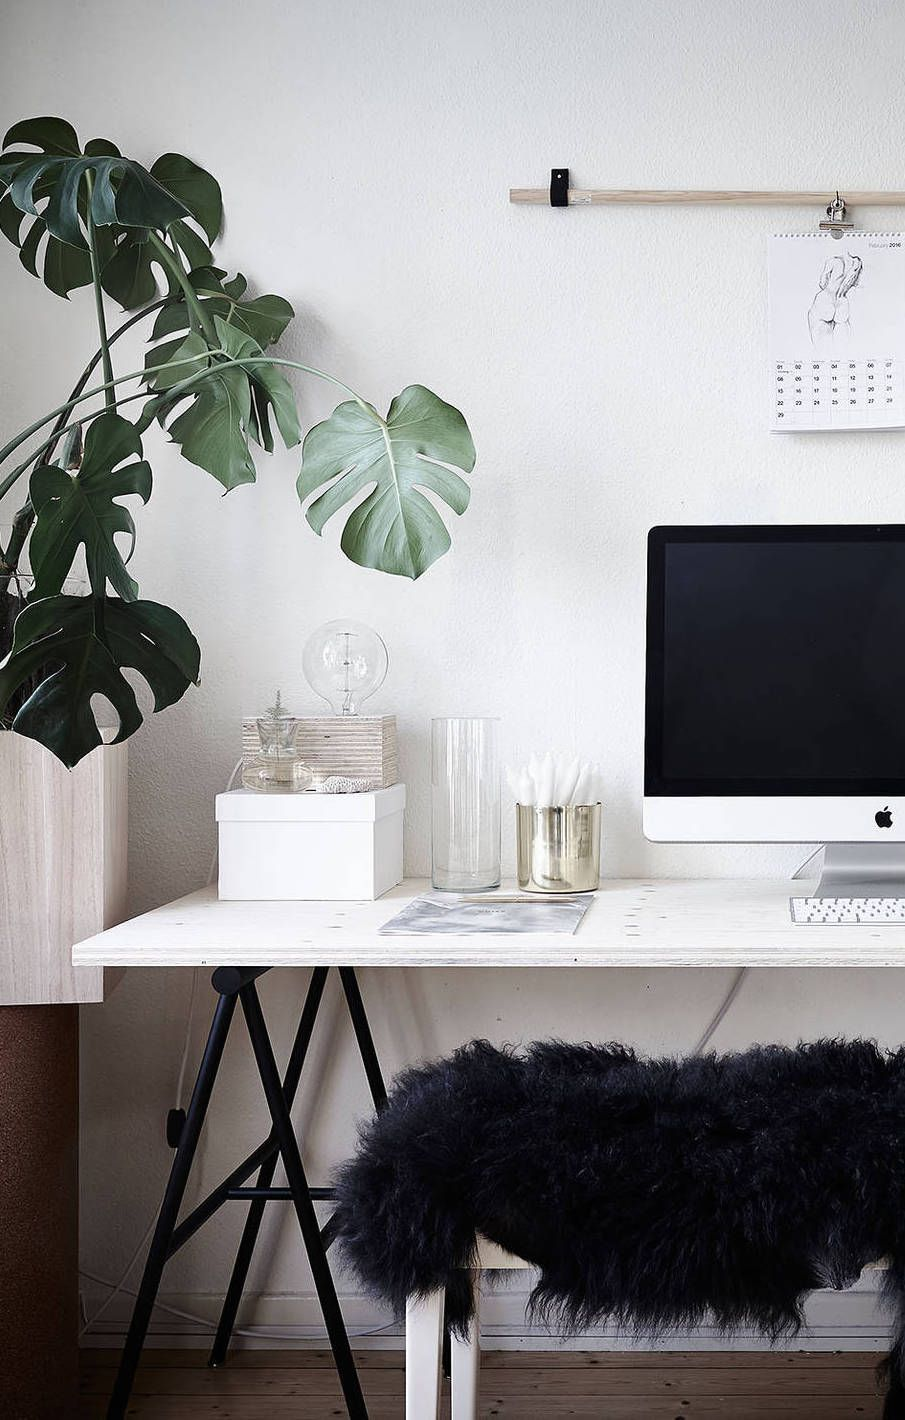 Bedroom, living room and work space in one | home | Pinterest ...